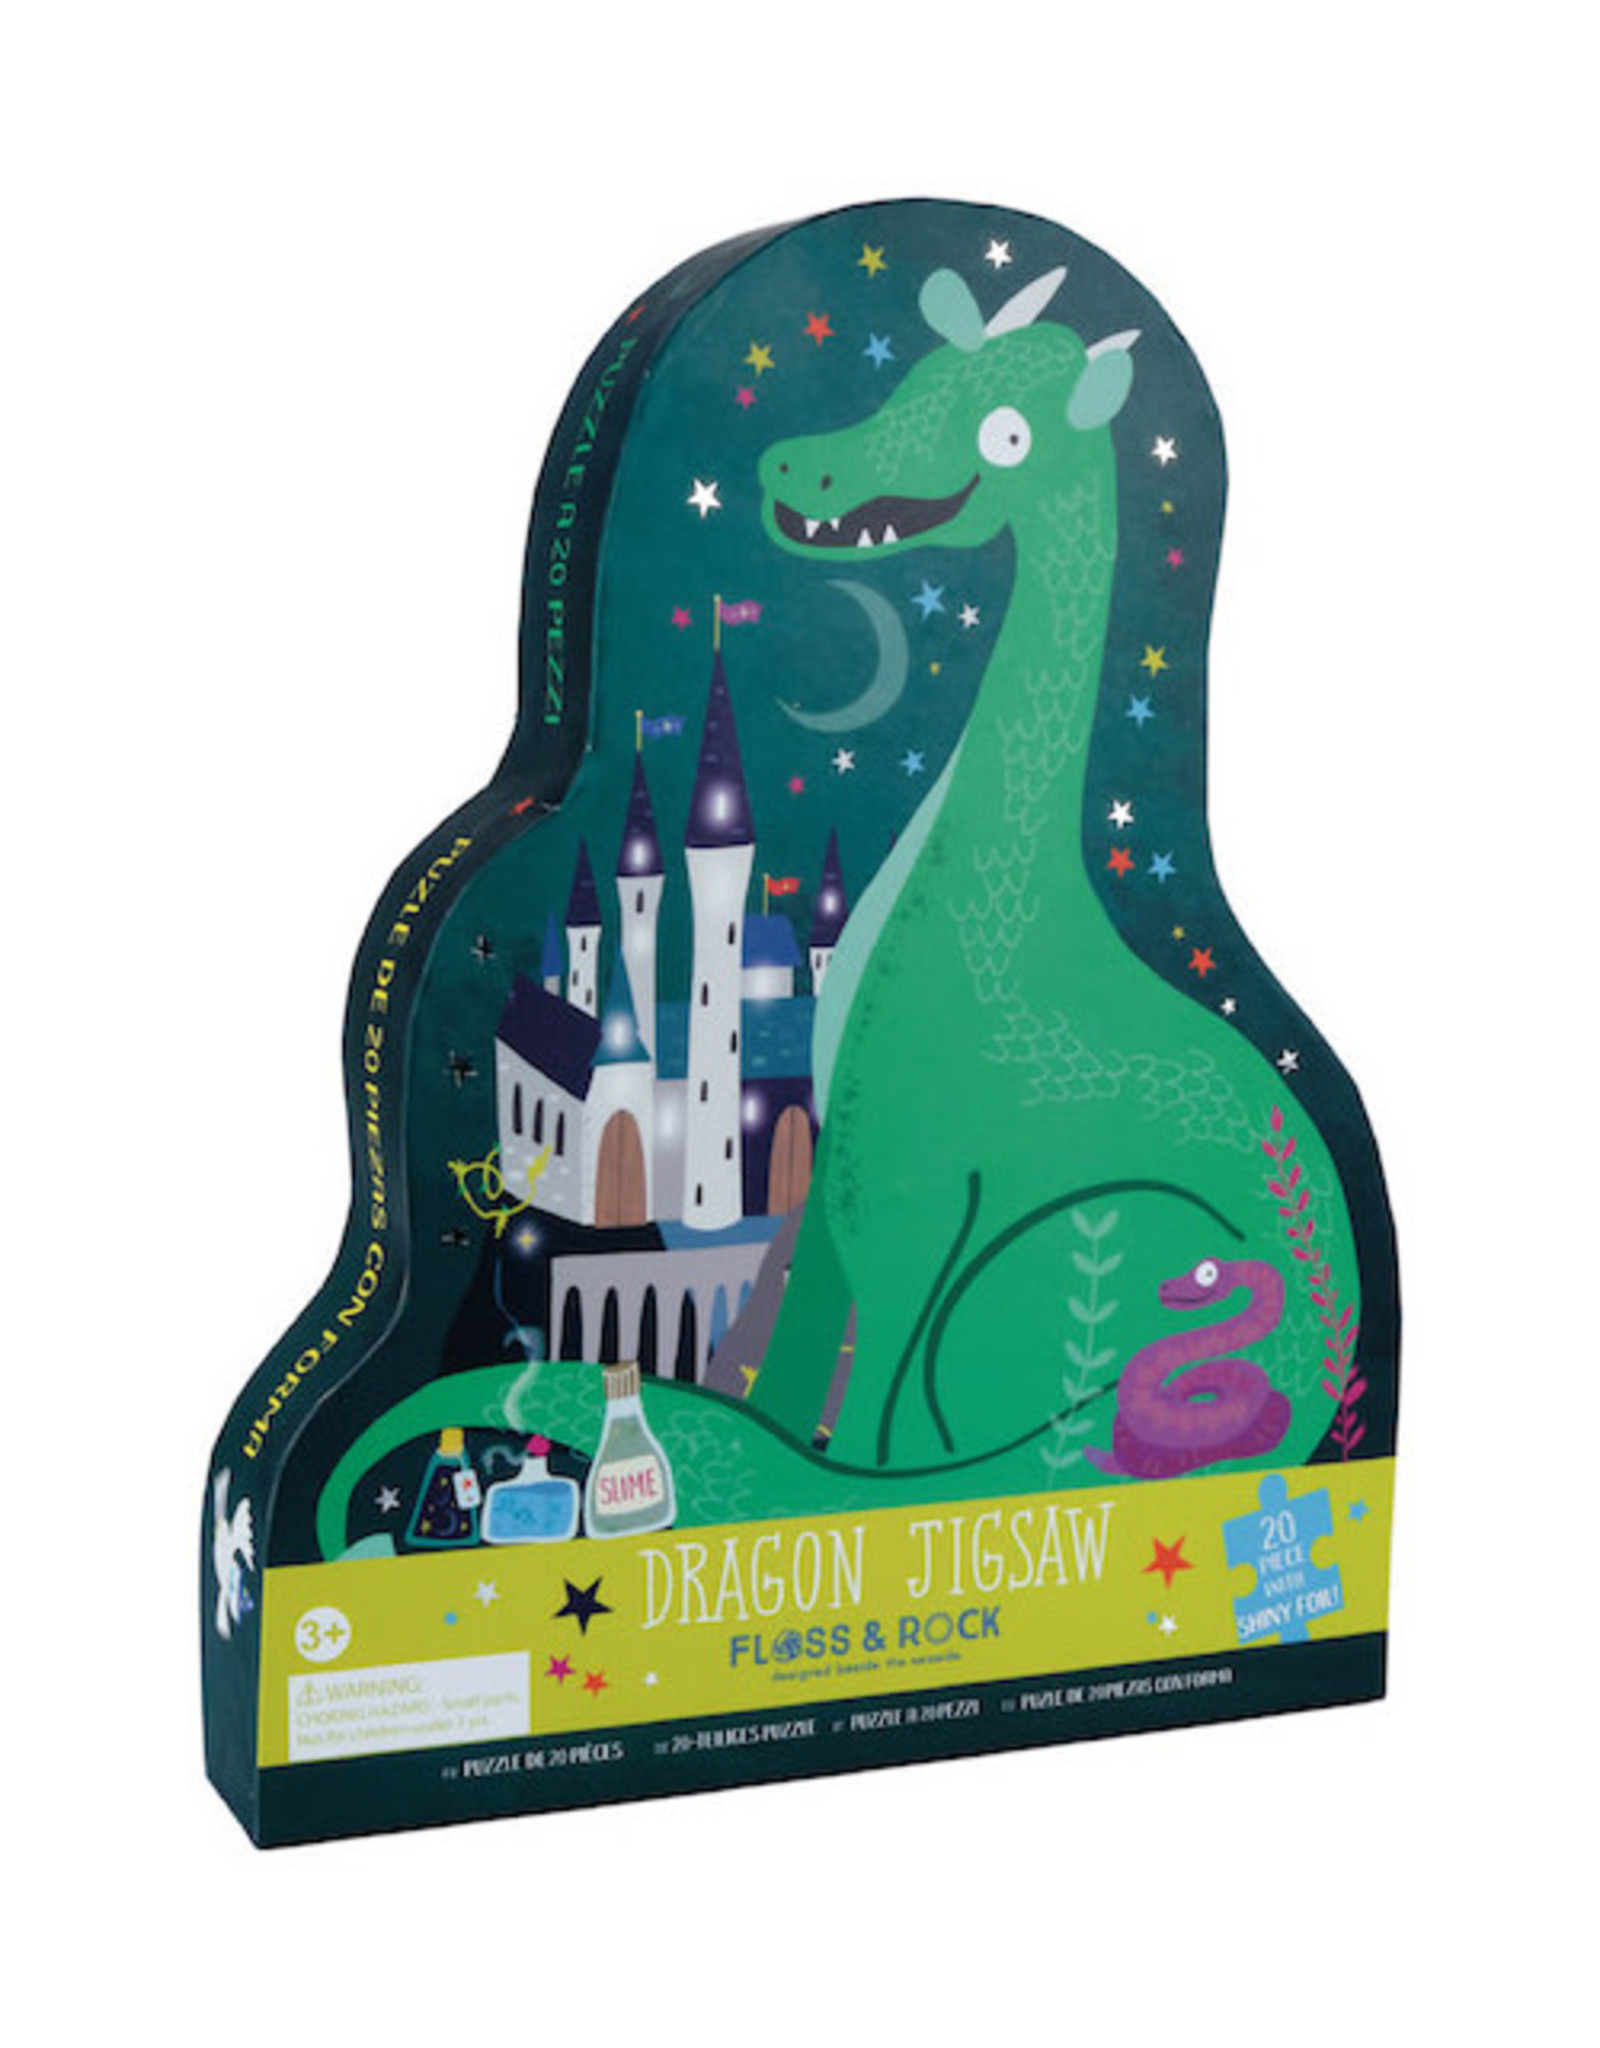 Floss & Rock Jigsaw Puzzle 20pc Spellbound